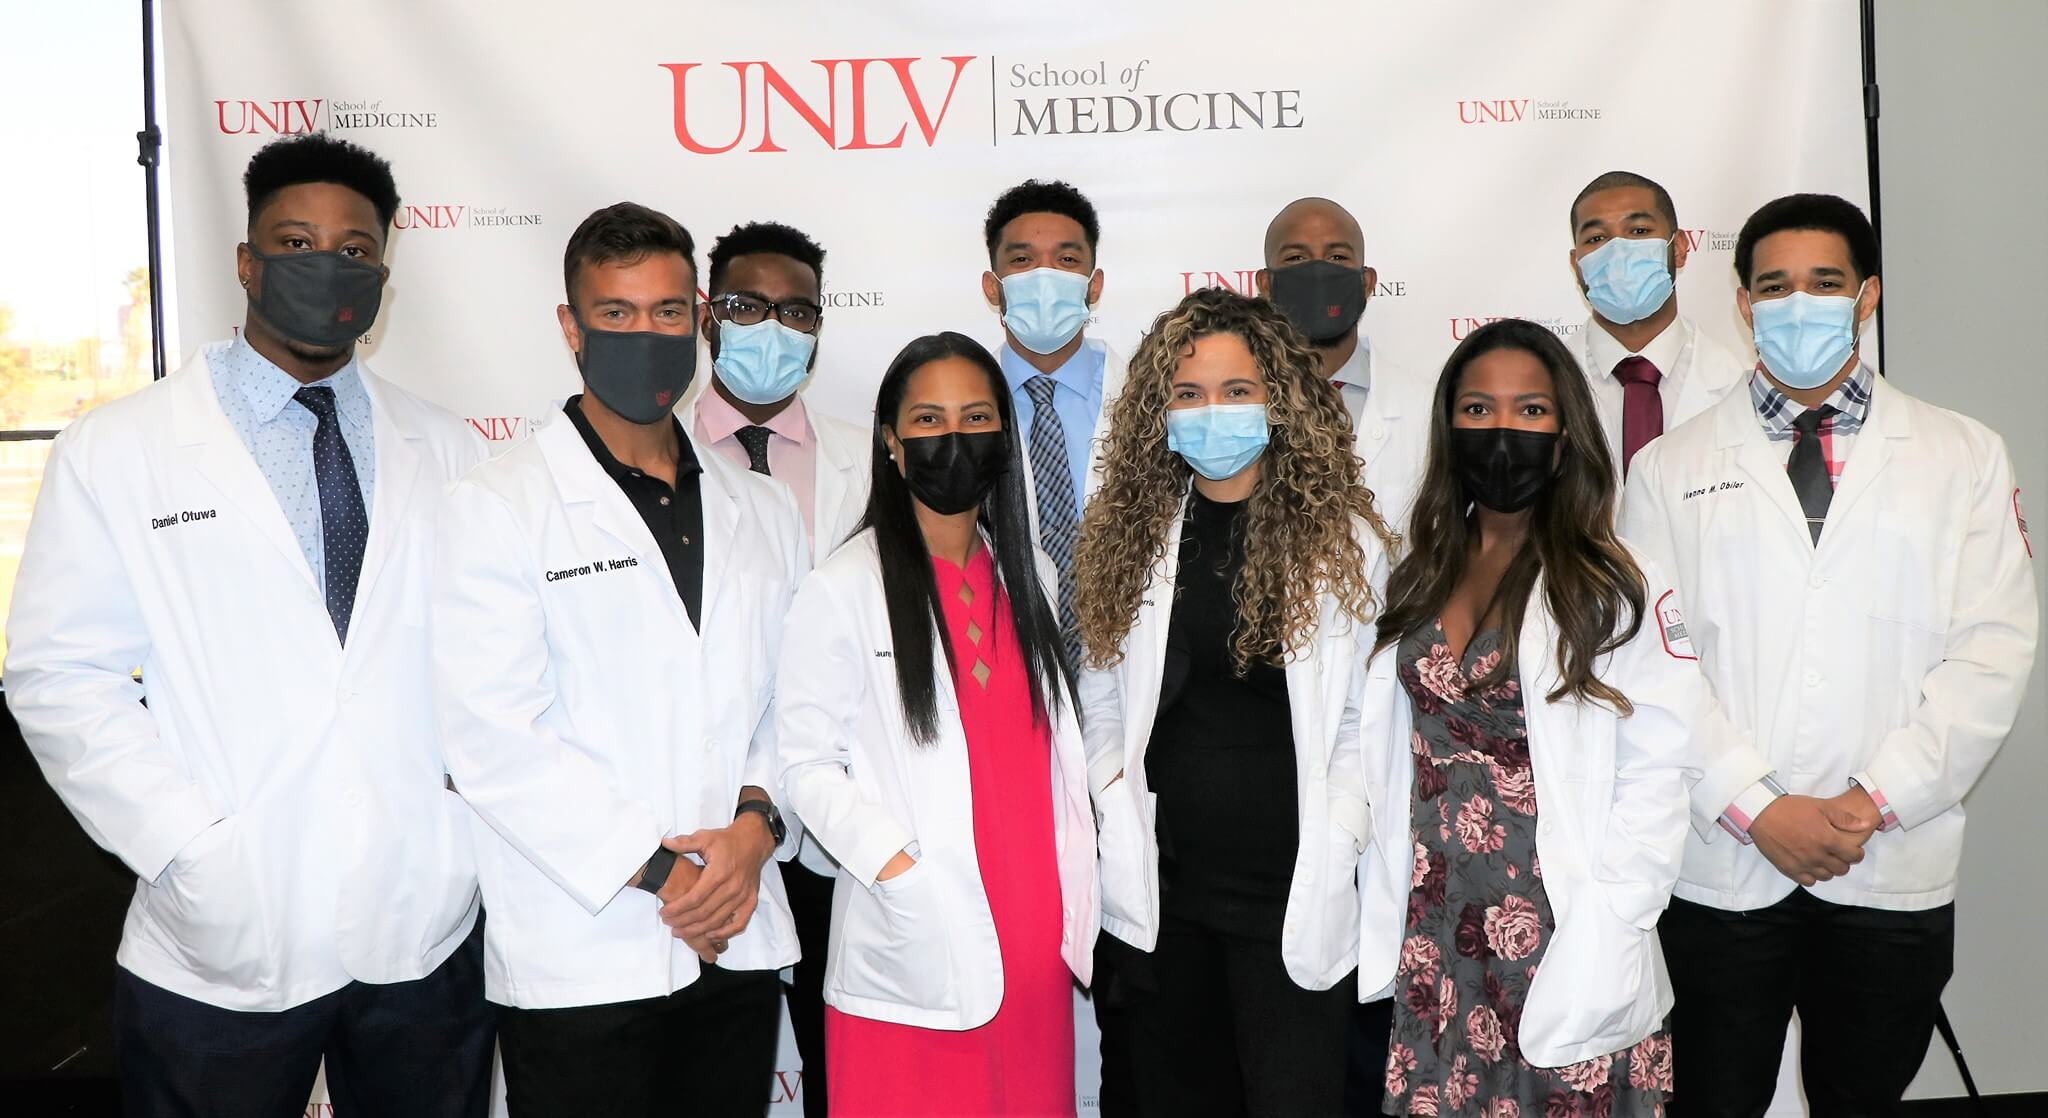 team of doctors with masks